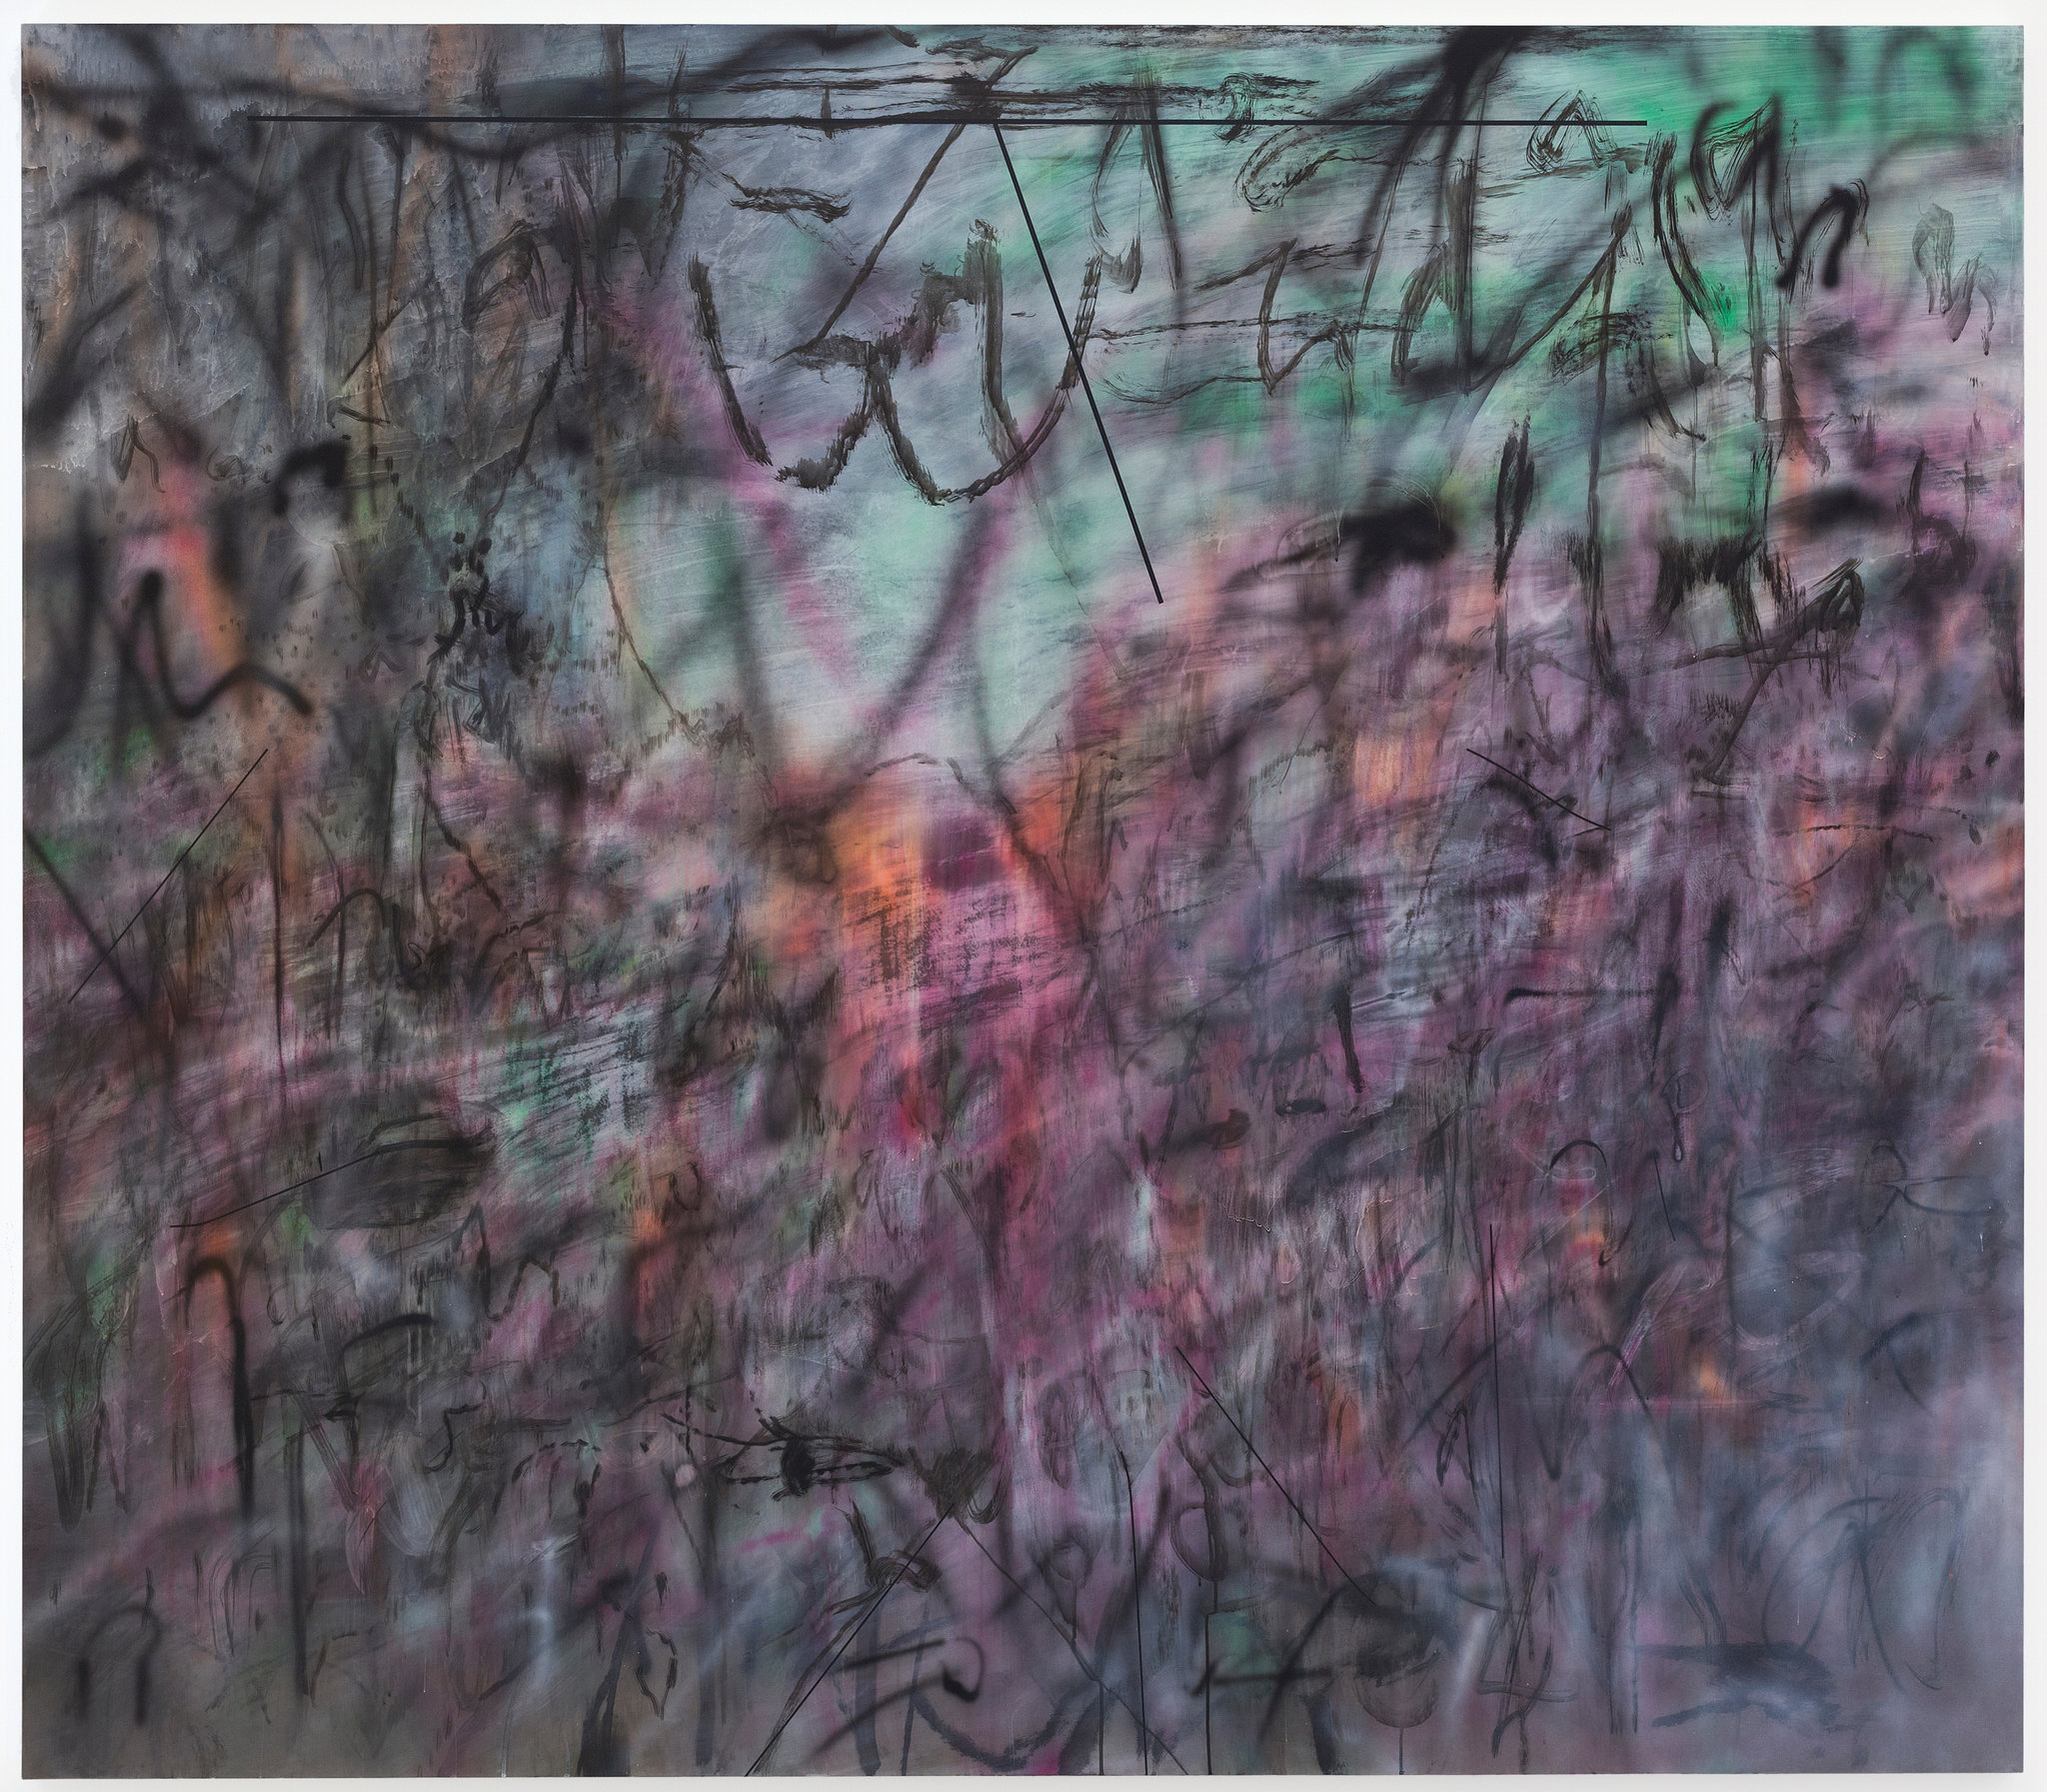 """""""Conjured Parts (eye), Ferguson,"""" a 2016 painting by Julie Mehretu. Credit Courtesy of the artist and Marian Goodman Gallery"""